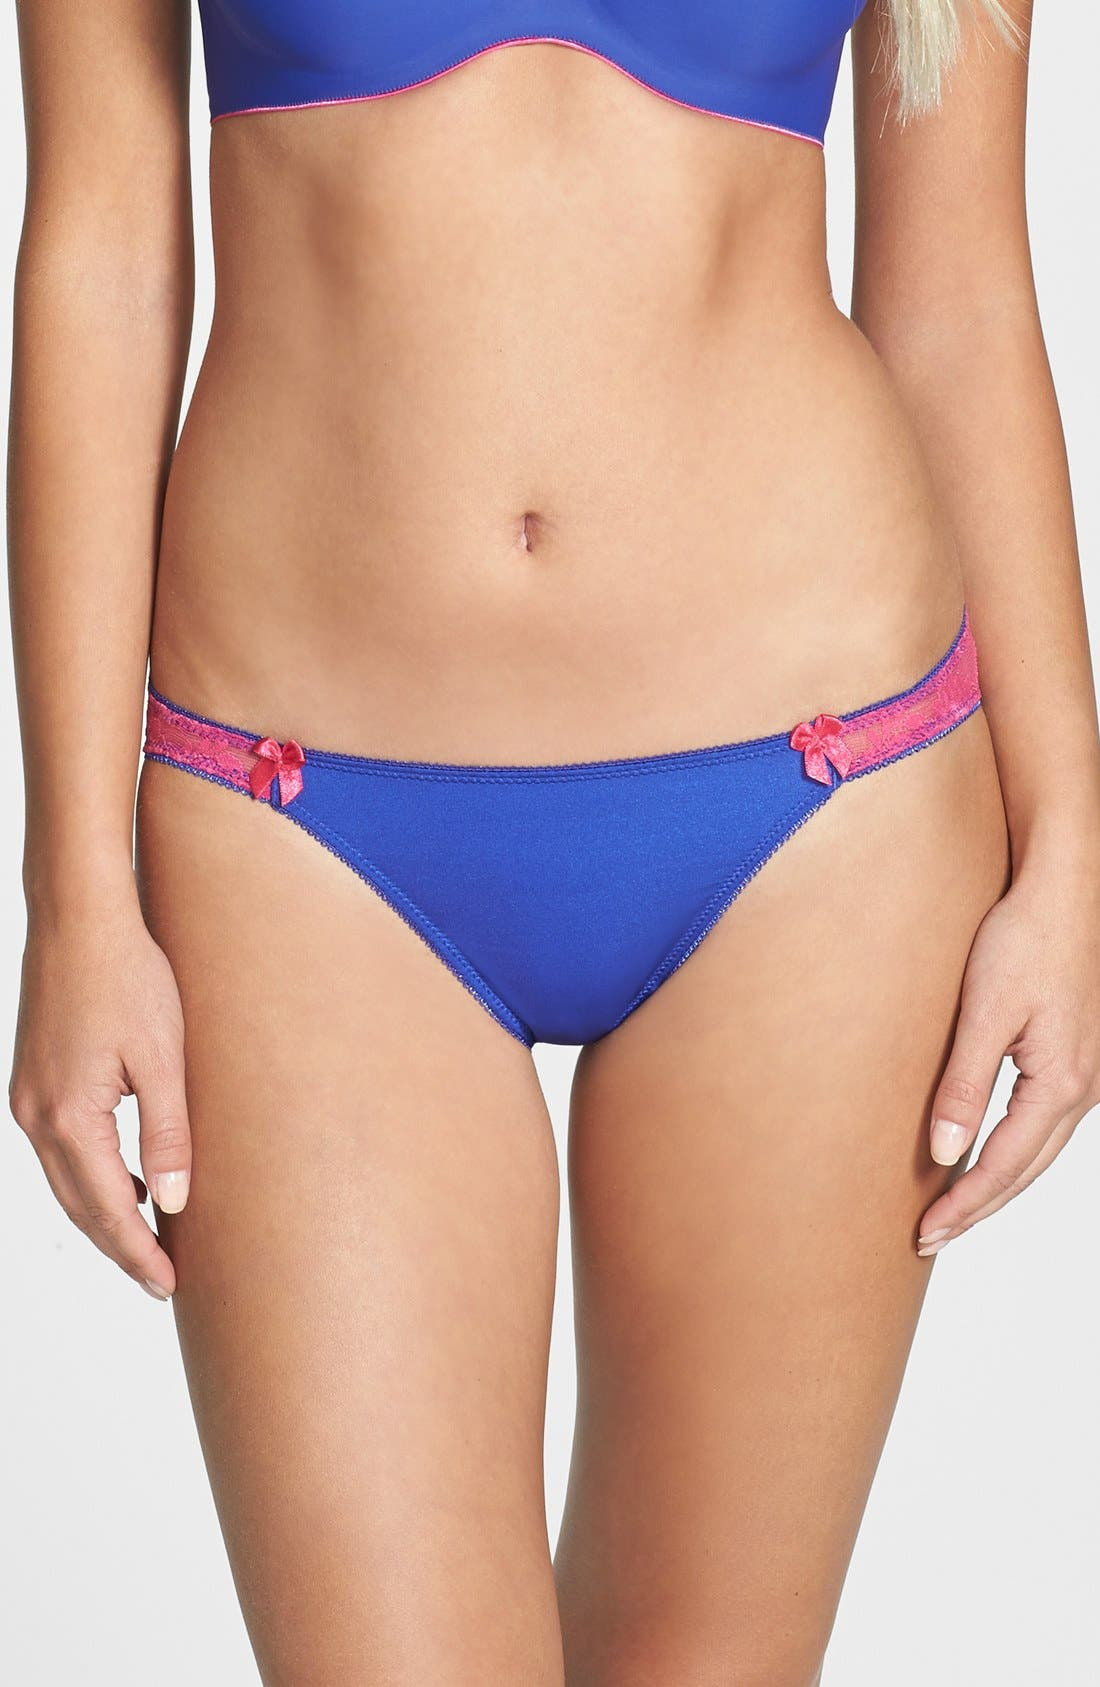 Alternate Image 1 Selected - b.tempt'd by Wacoal 'Most Desired' Bikini (3 for $33)